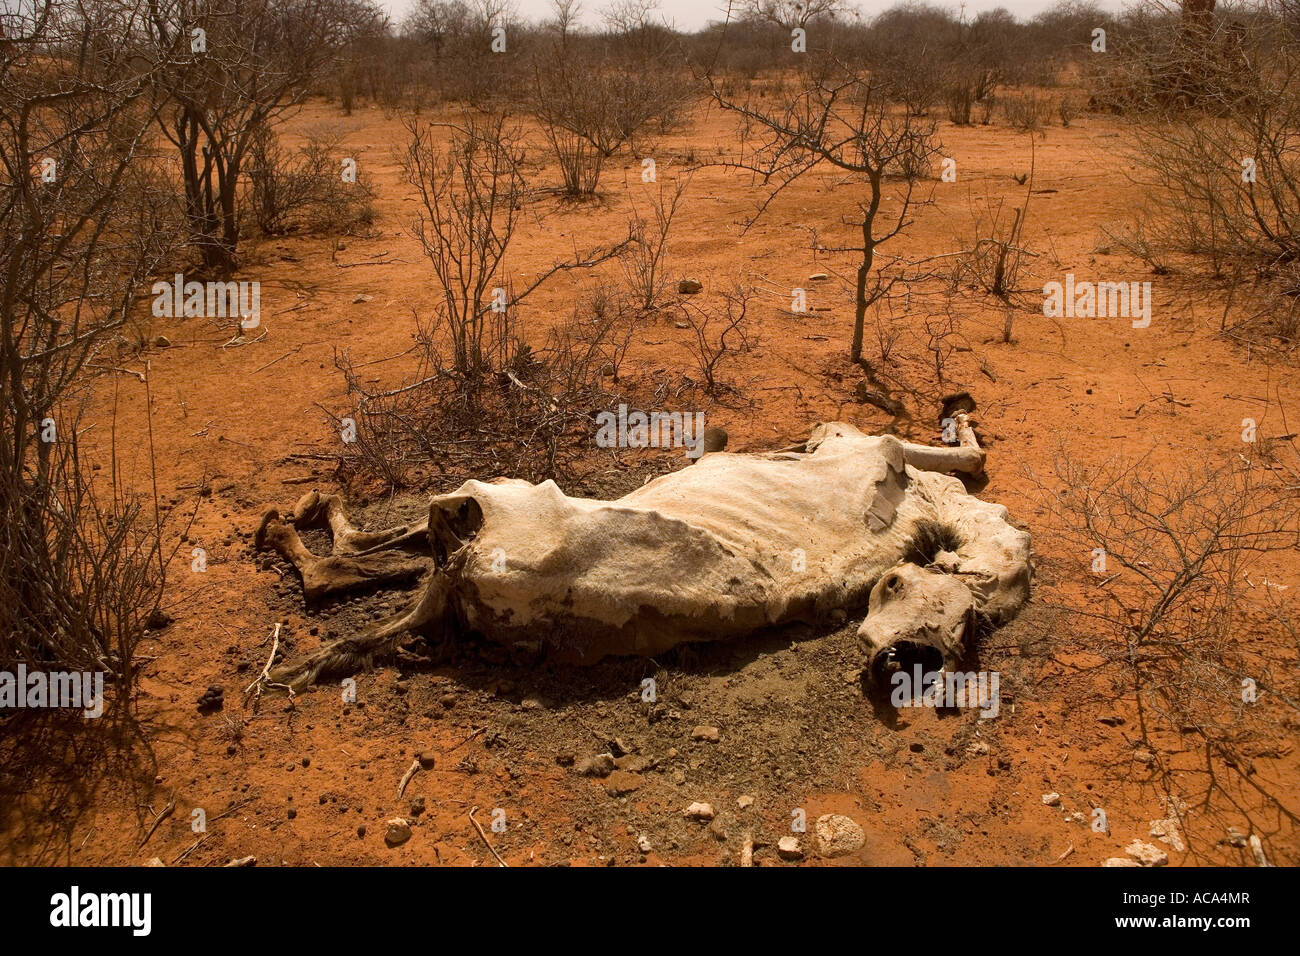 A camel lies dead by the side of the track, killed by Somalia's worst drought in 20 years - Stock Image